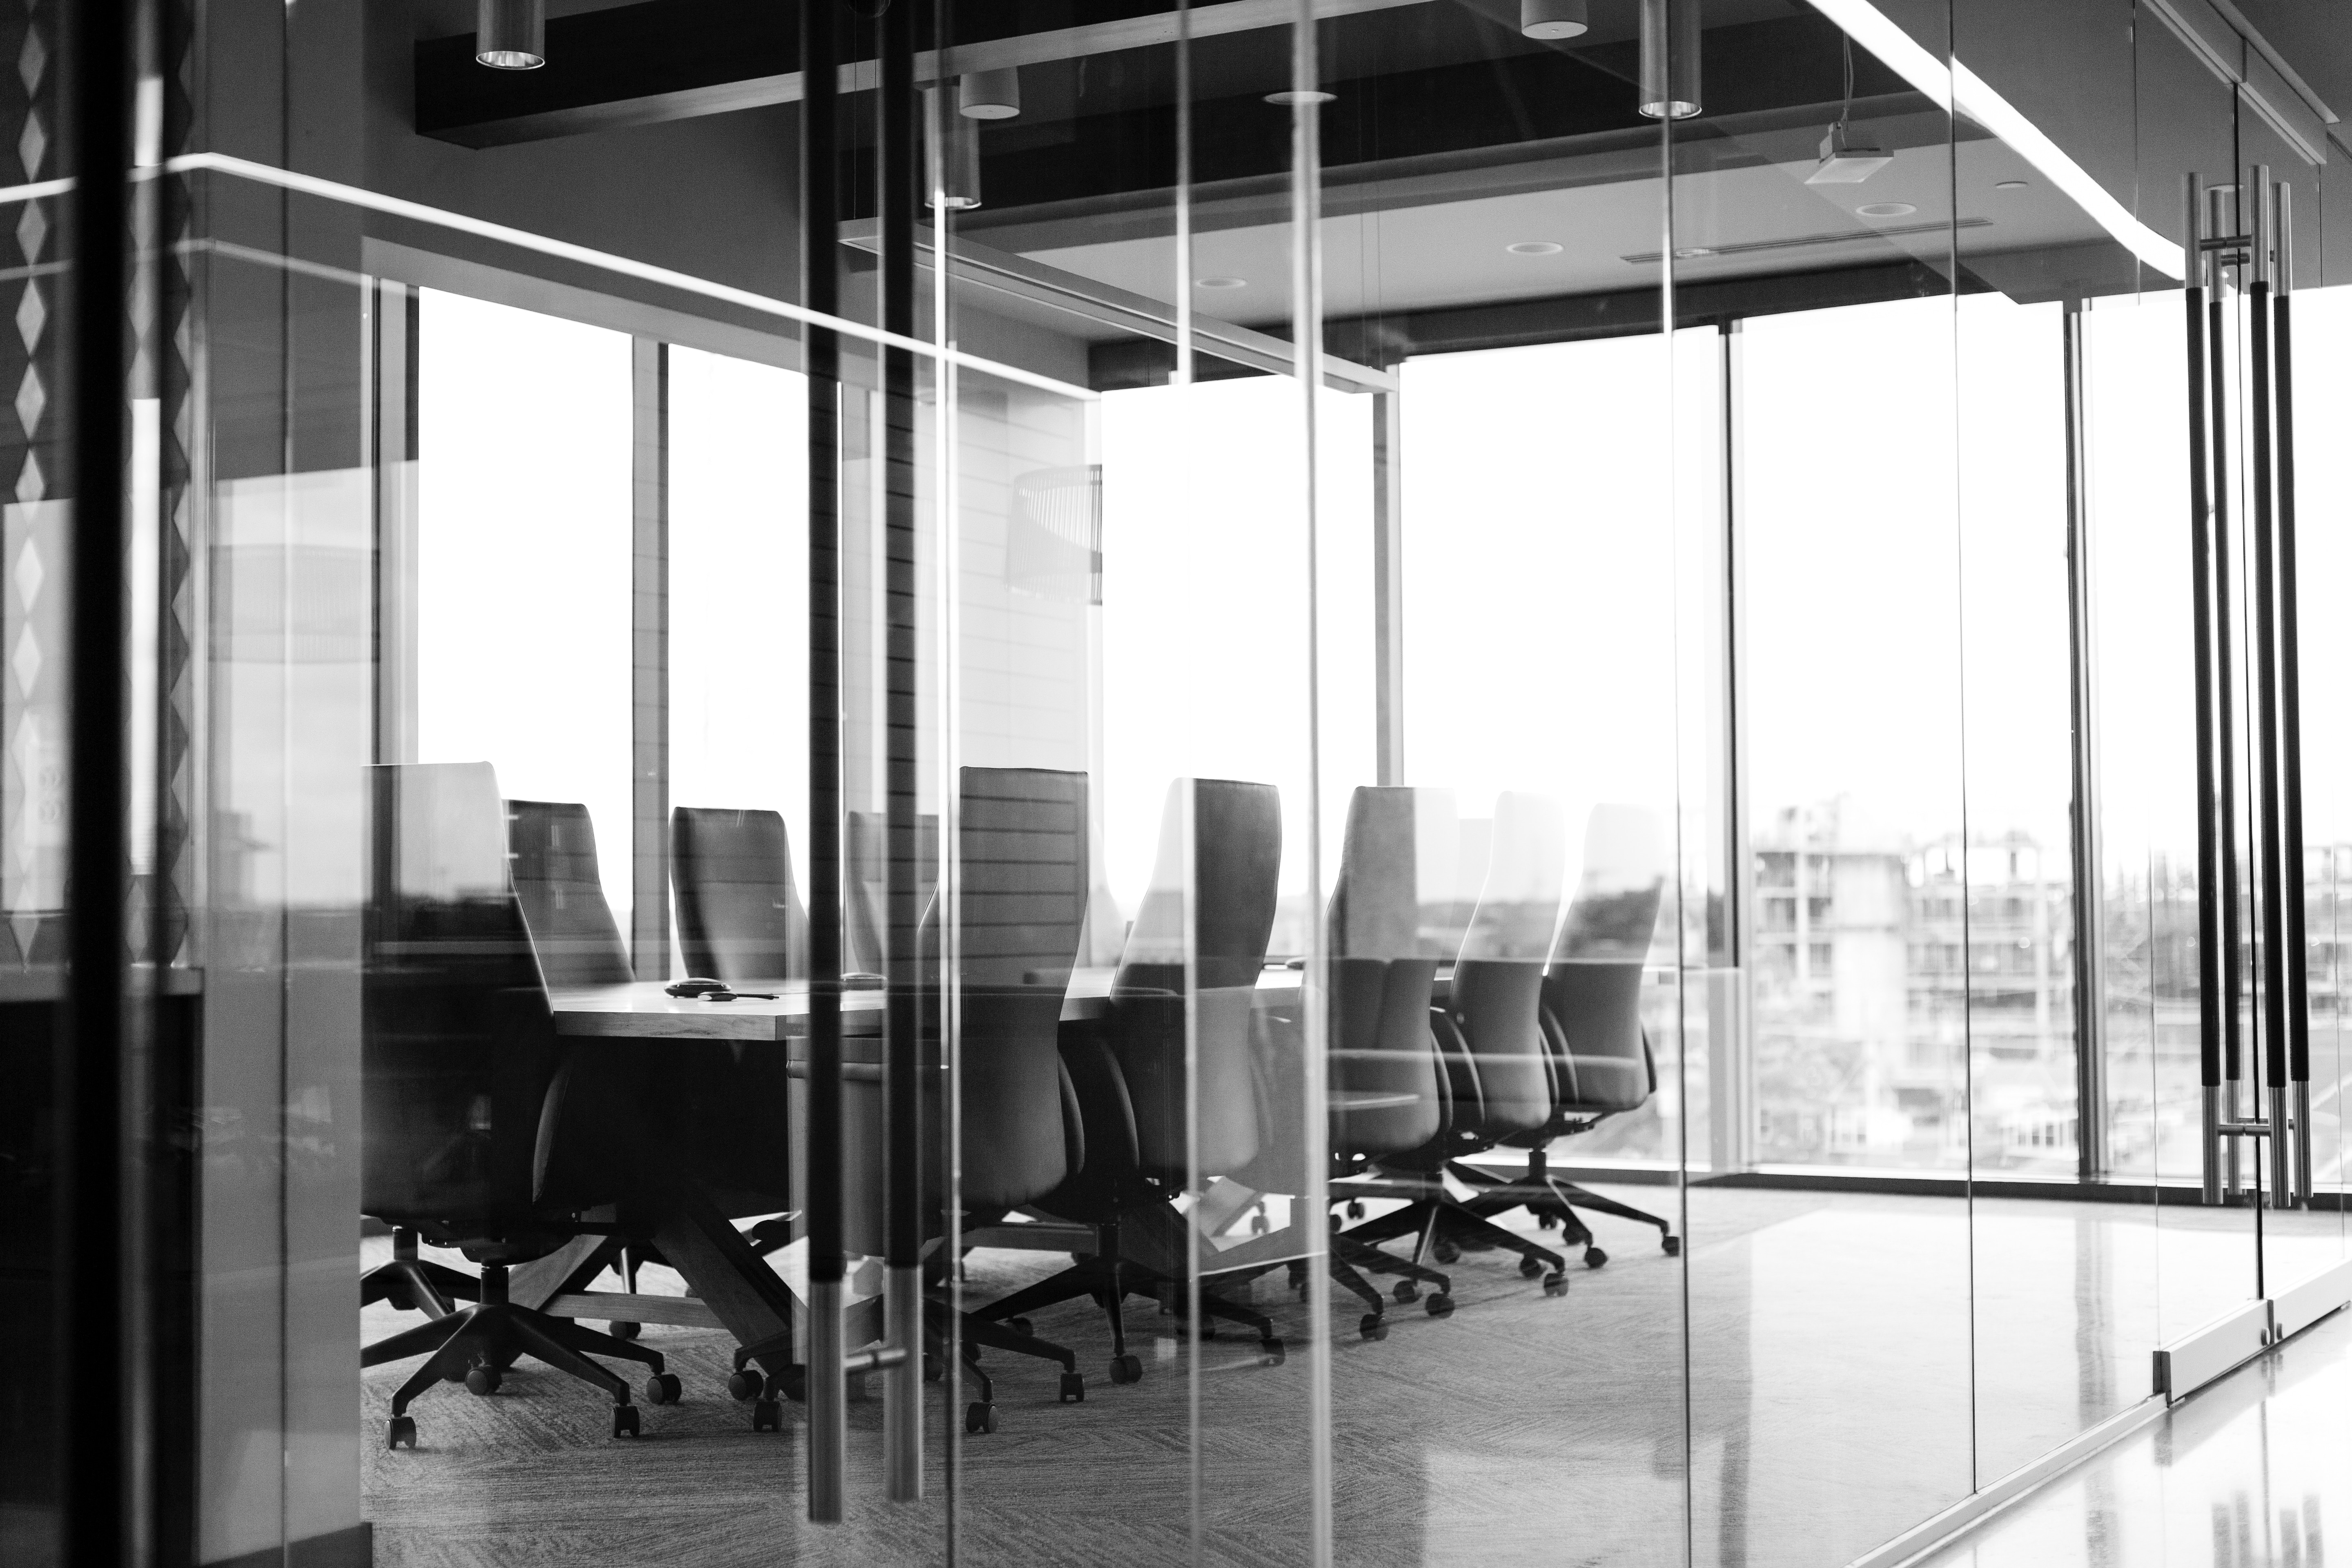 Office Design Should Focus On People, Not Just The Work They Do